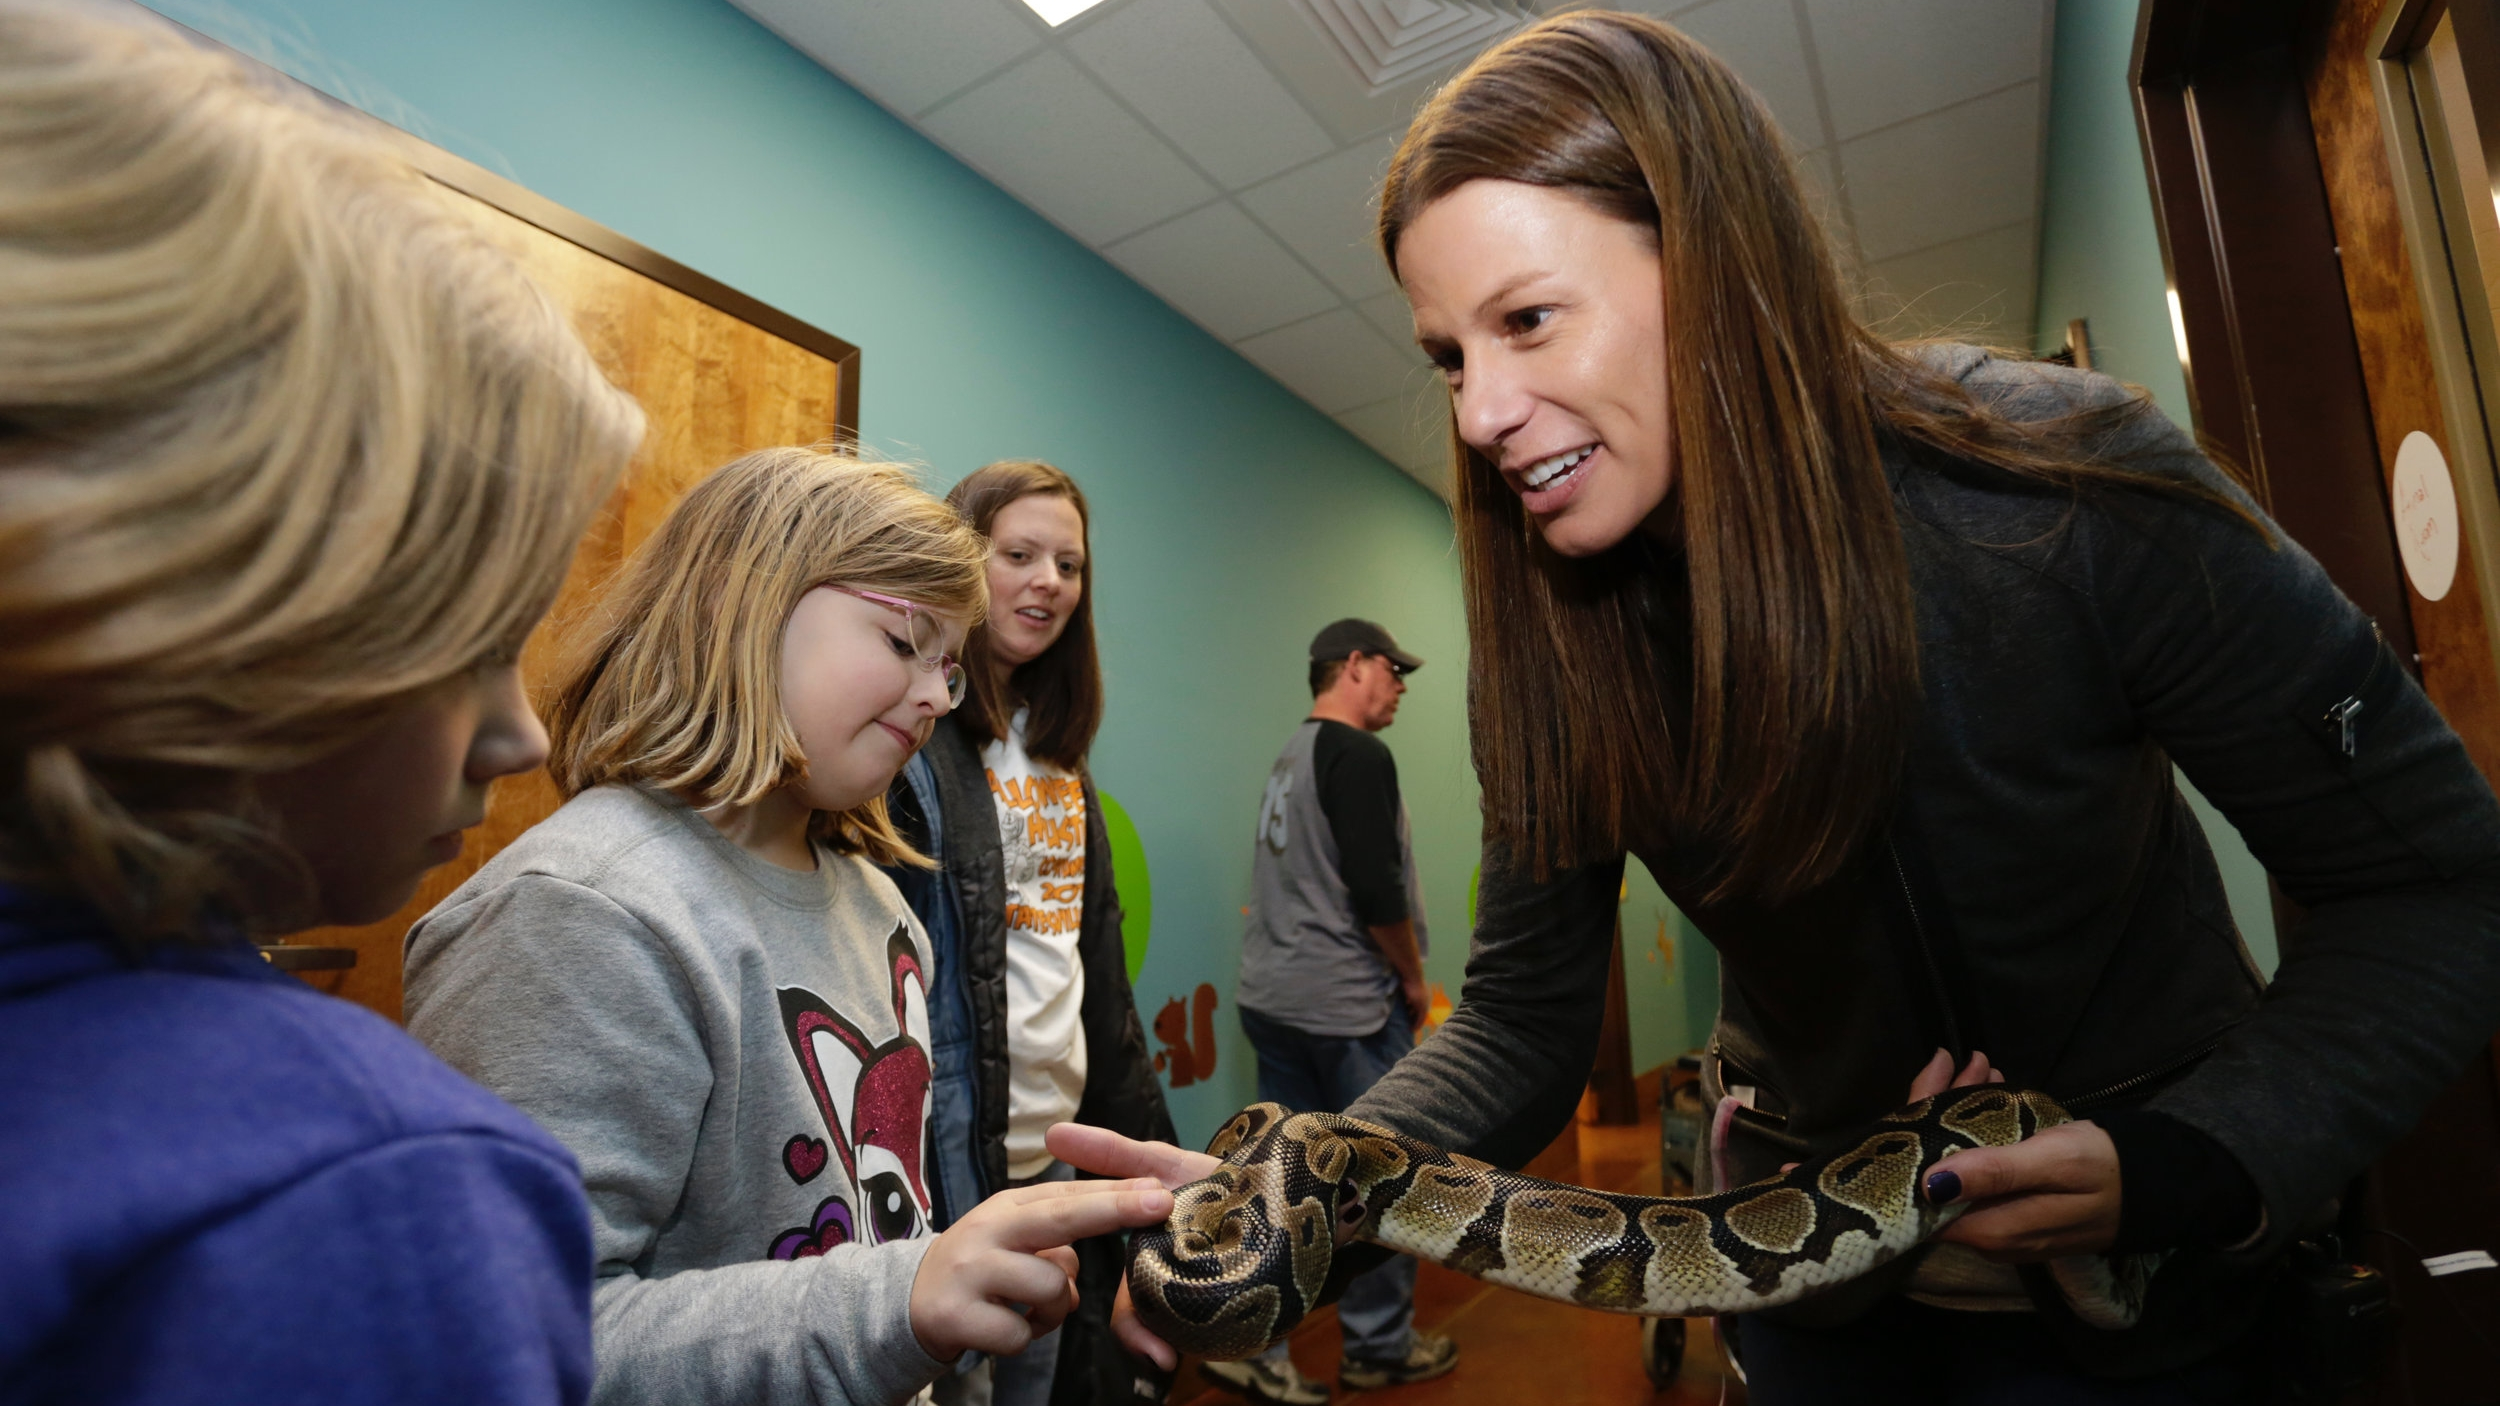 At Rescue Ranch, Krissie Newman '00 loves to see students' reactions in the snake room